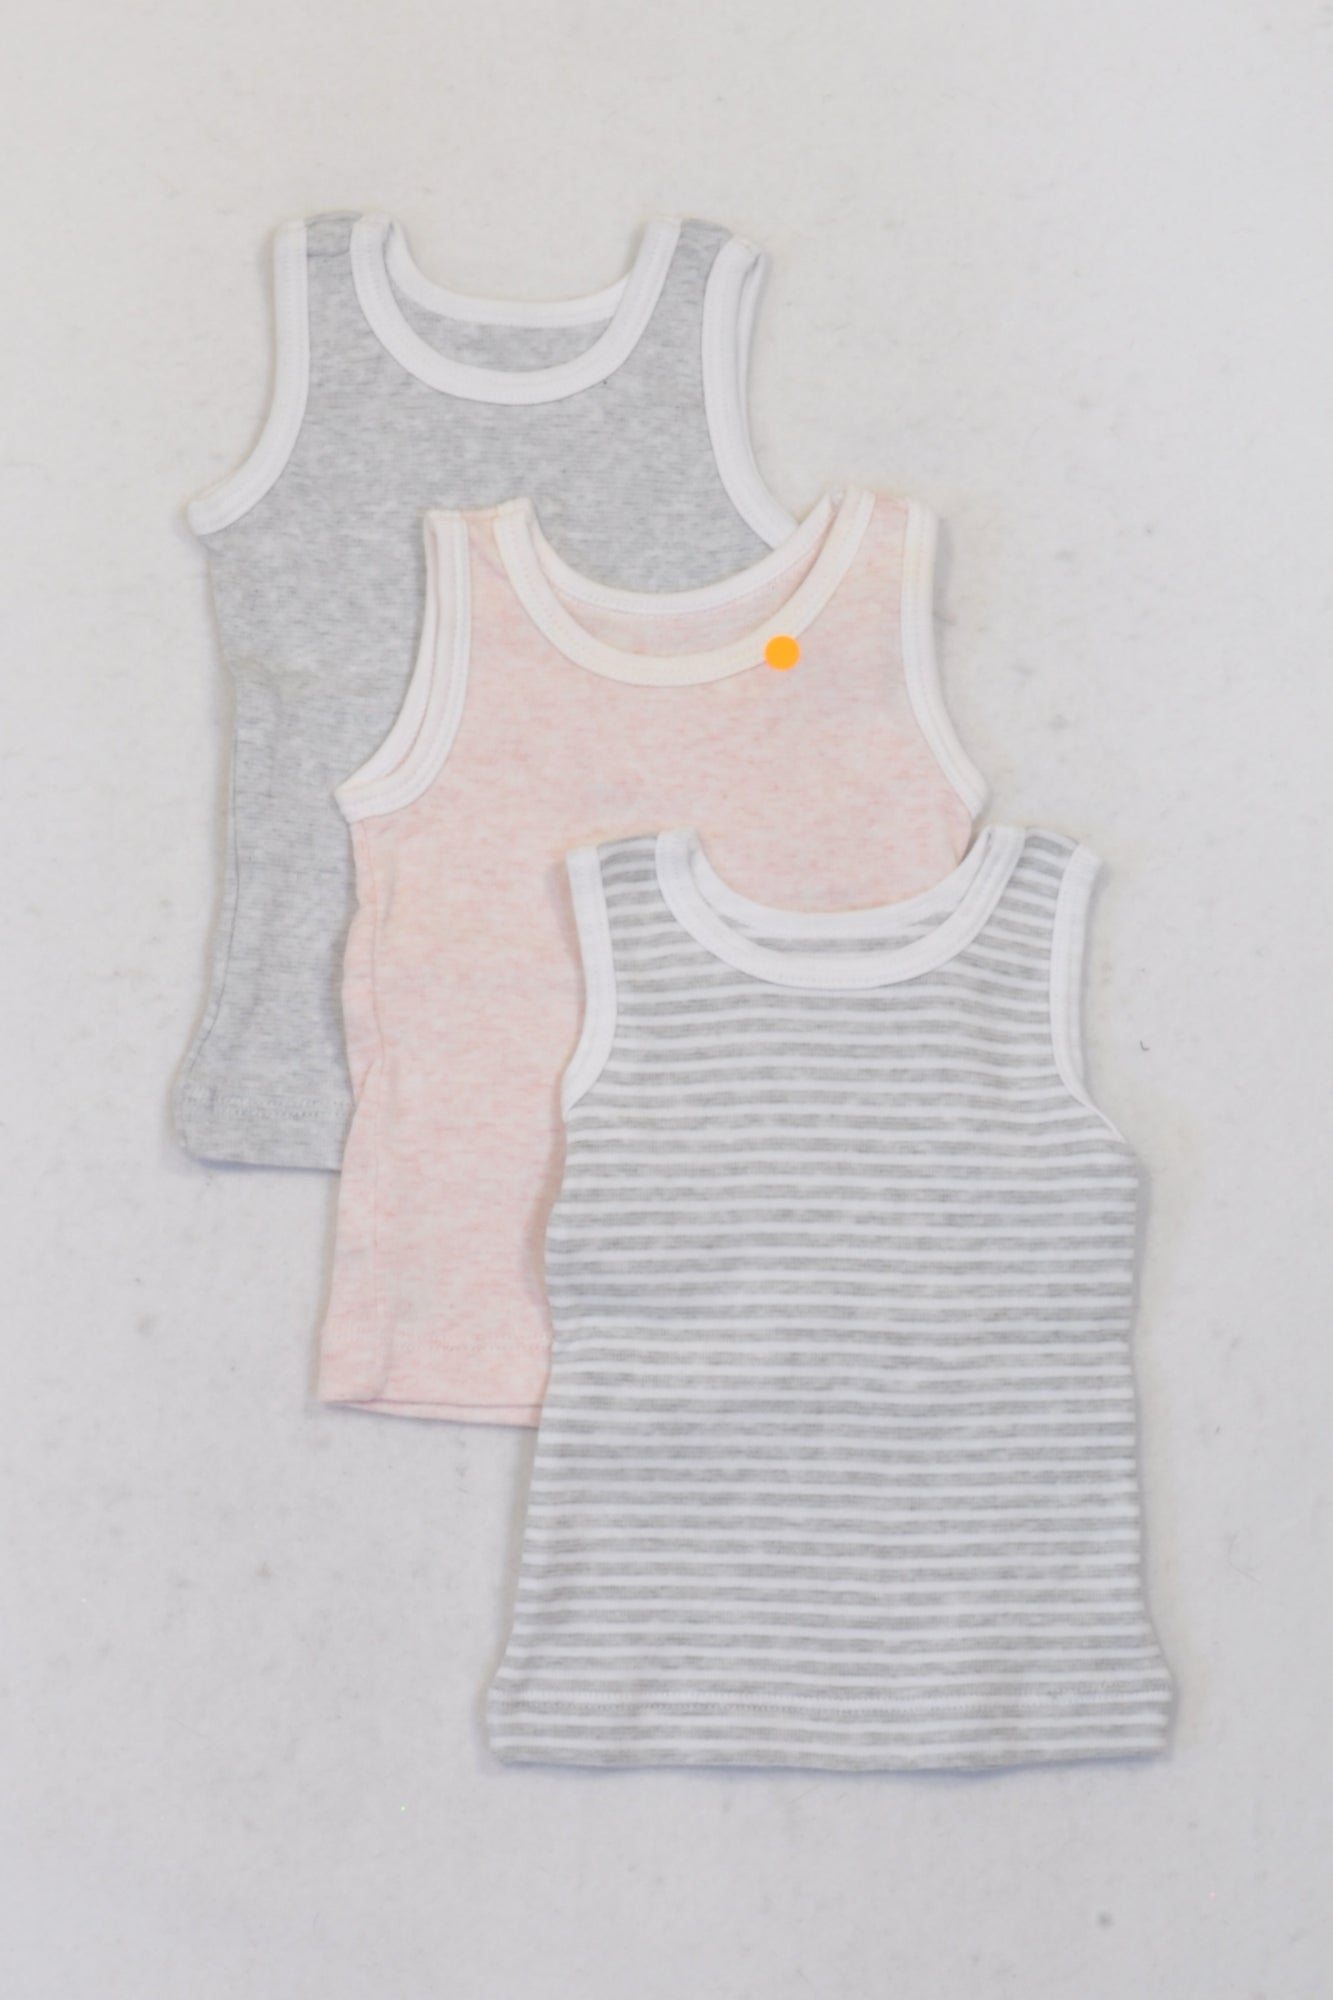 Woolworths 3Pack of Grey & Pink Vest Tops Girls 3-6 months